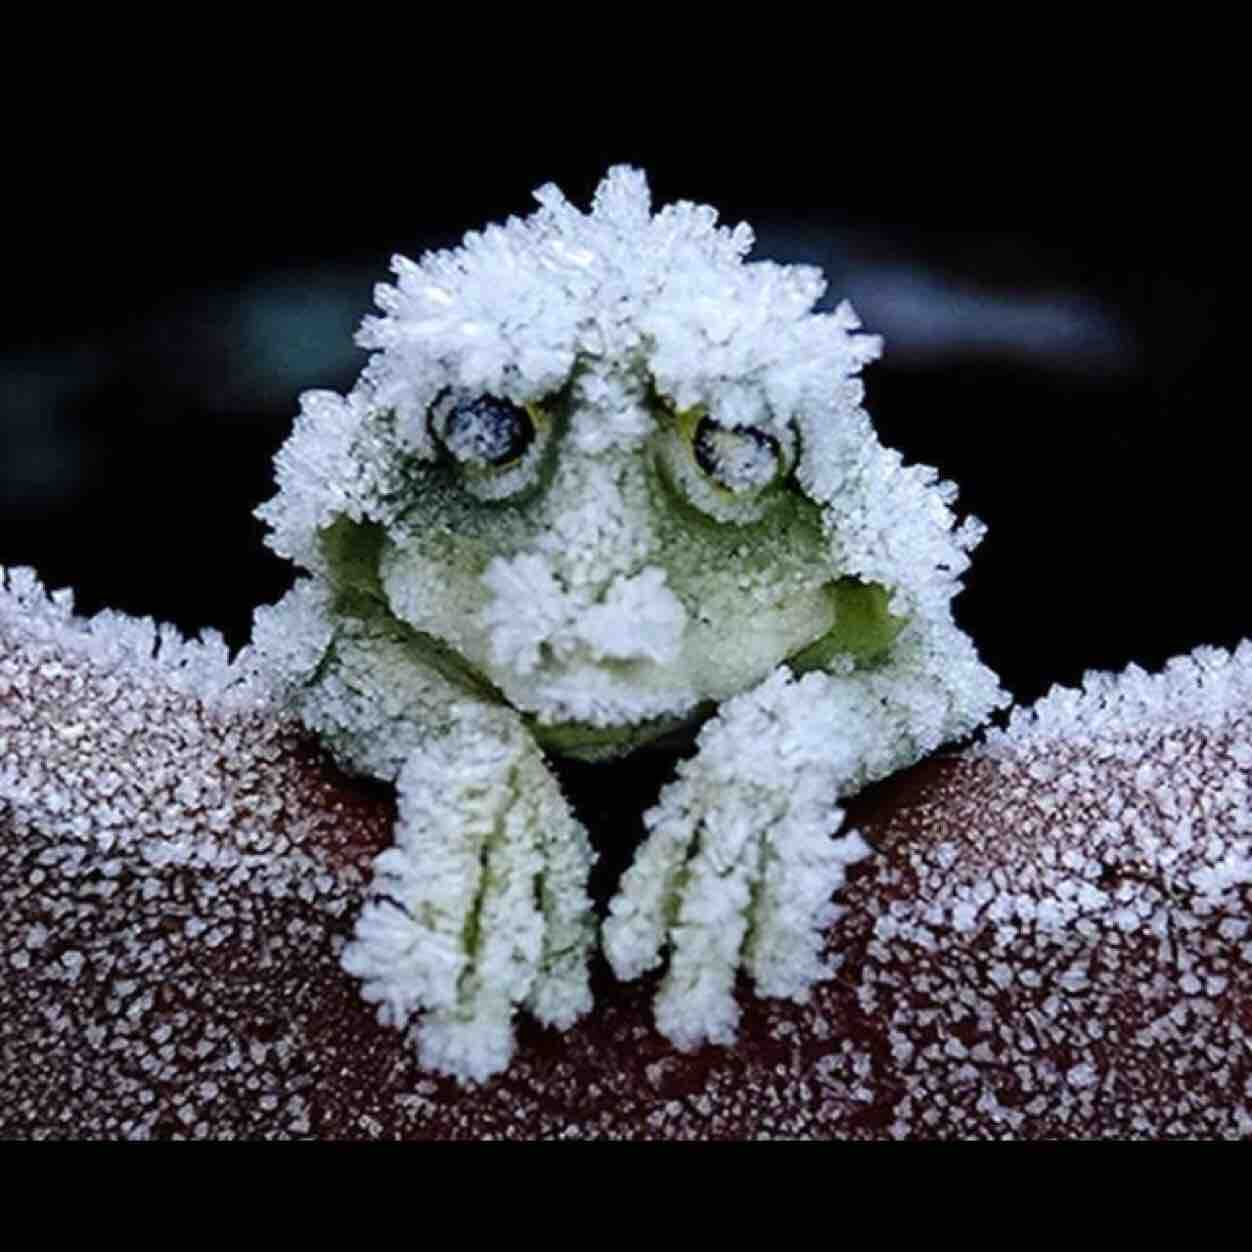 The Alaskan Tree frog freezes solid in the winter, stopping it's heart completely, and then unthaws in the spring. http://t.co/iUqAUxXYmv